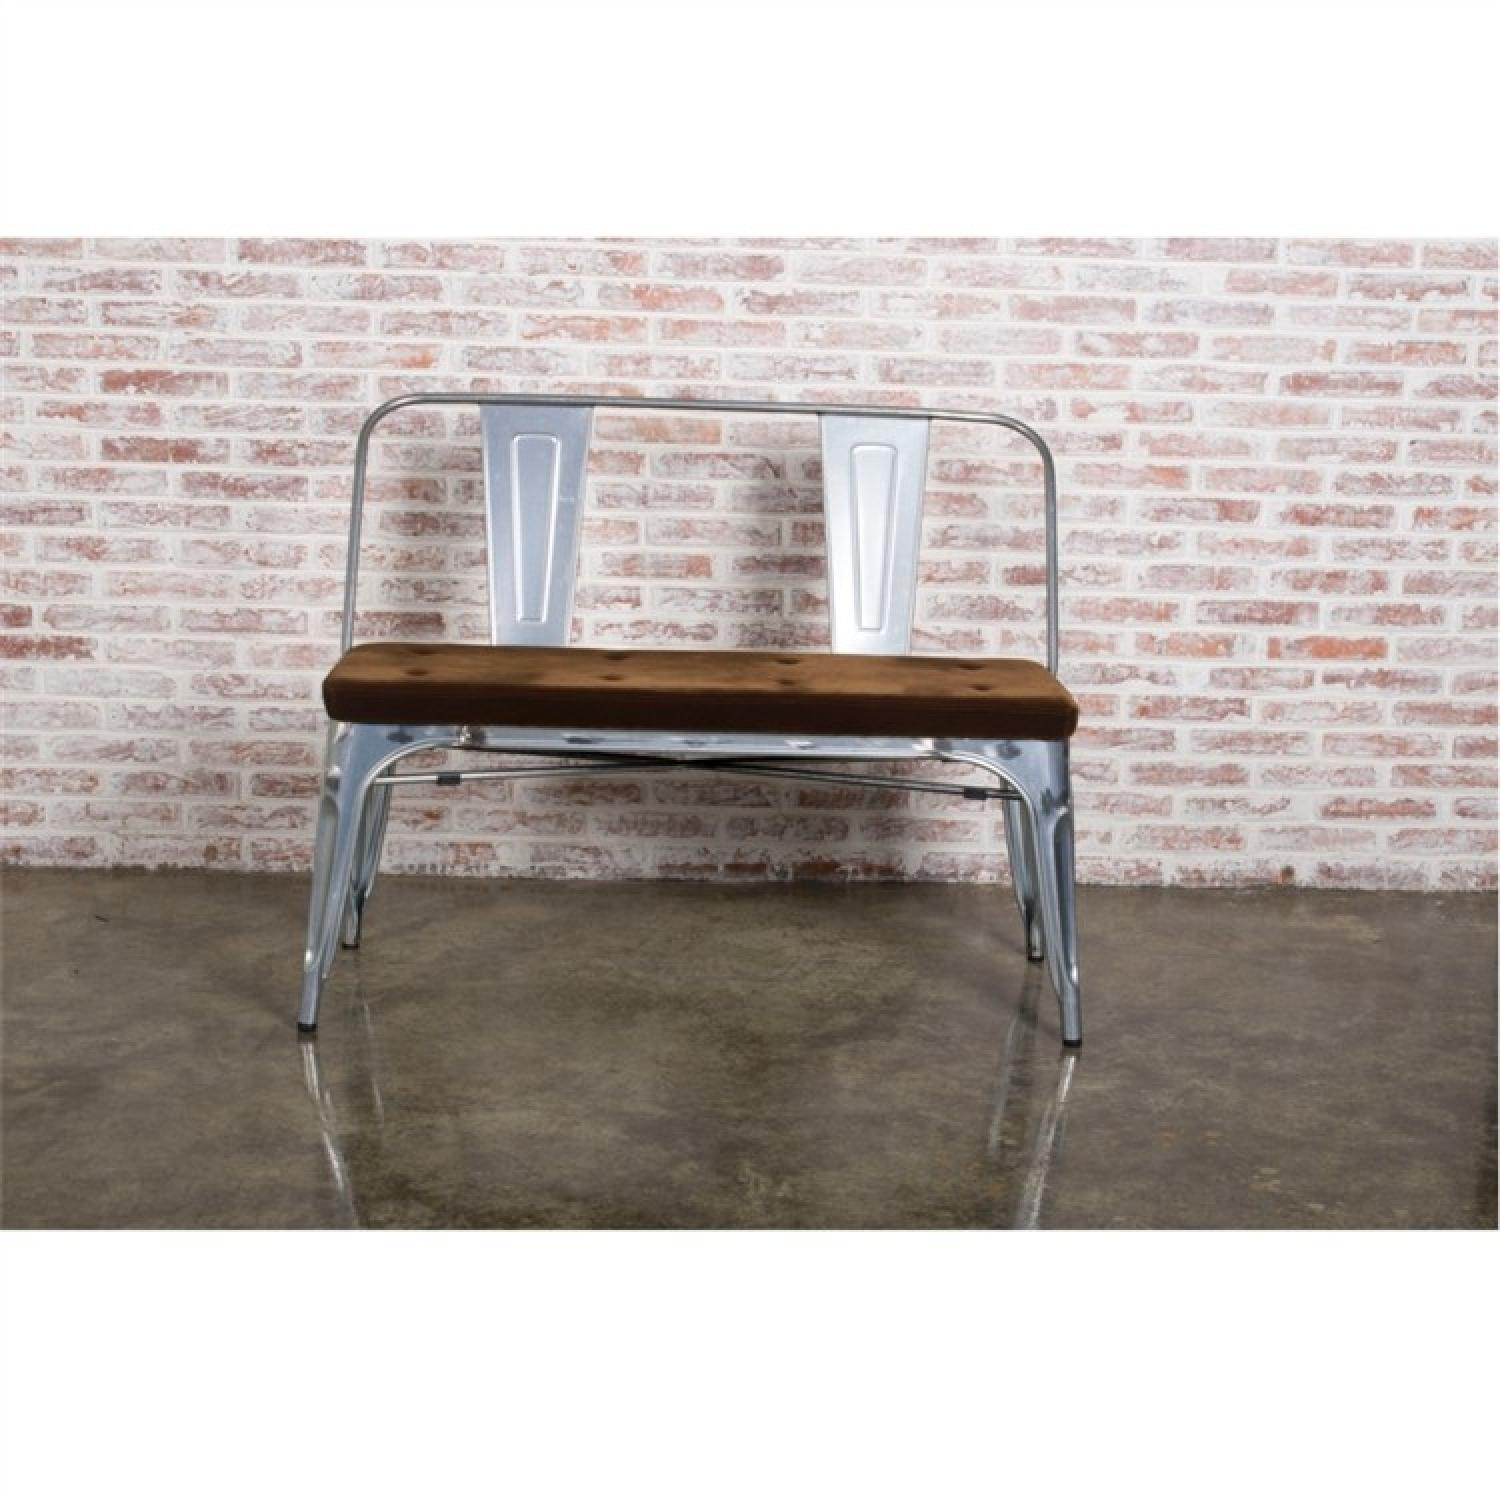 Double Seat Bench In Galvanized Metal Frame w/ Brown Fabric Cushion - image-2